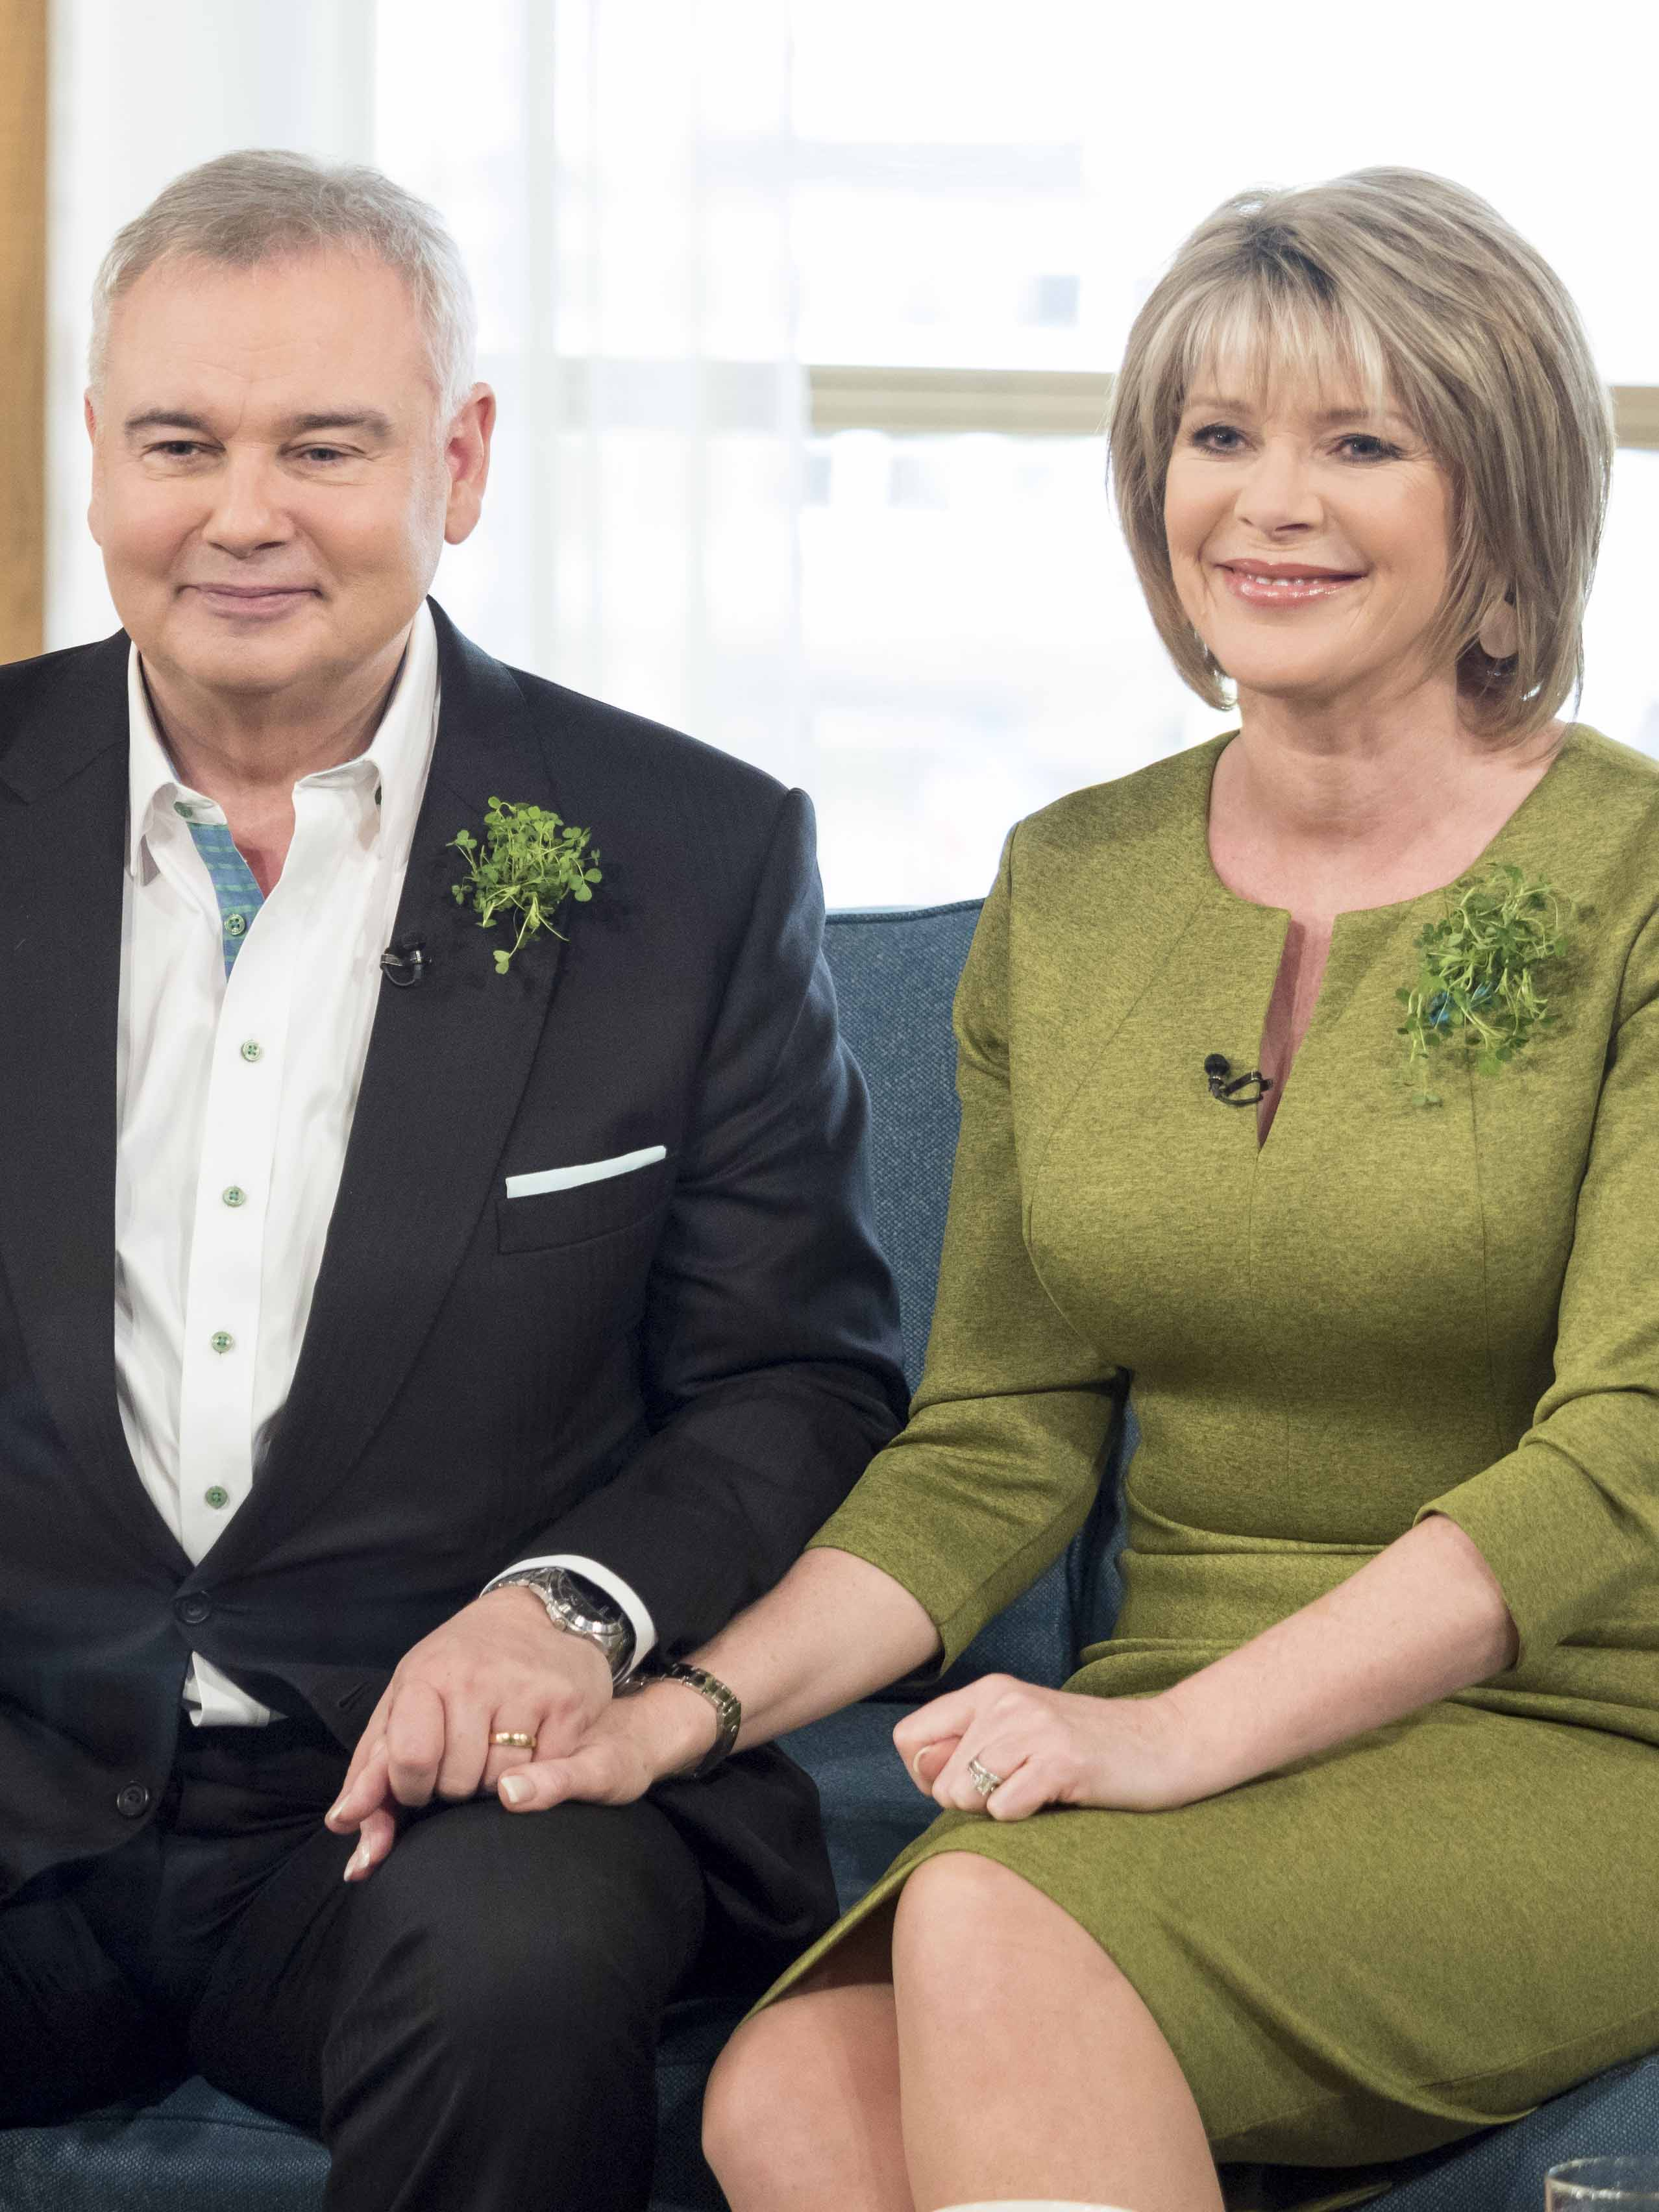 Ruth and Eamonn's new show, Do The Right Thing, proved a huge hit with viewers Ruth and Eamonn's new show, Do The Right Thing, proved a huge hit with viewers new photo